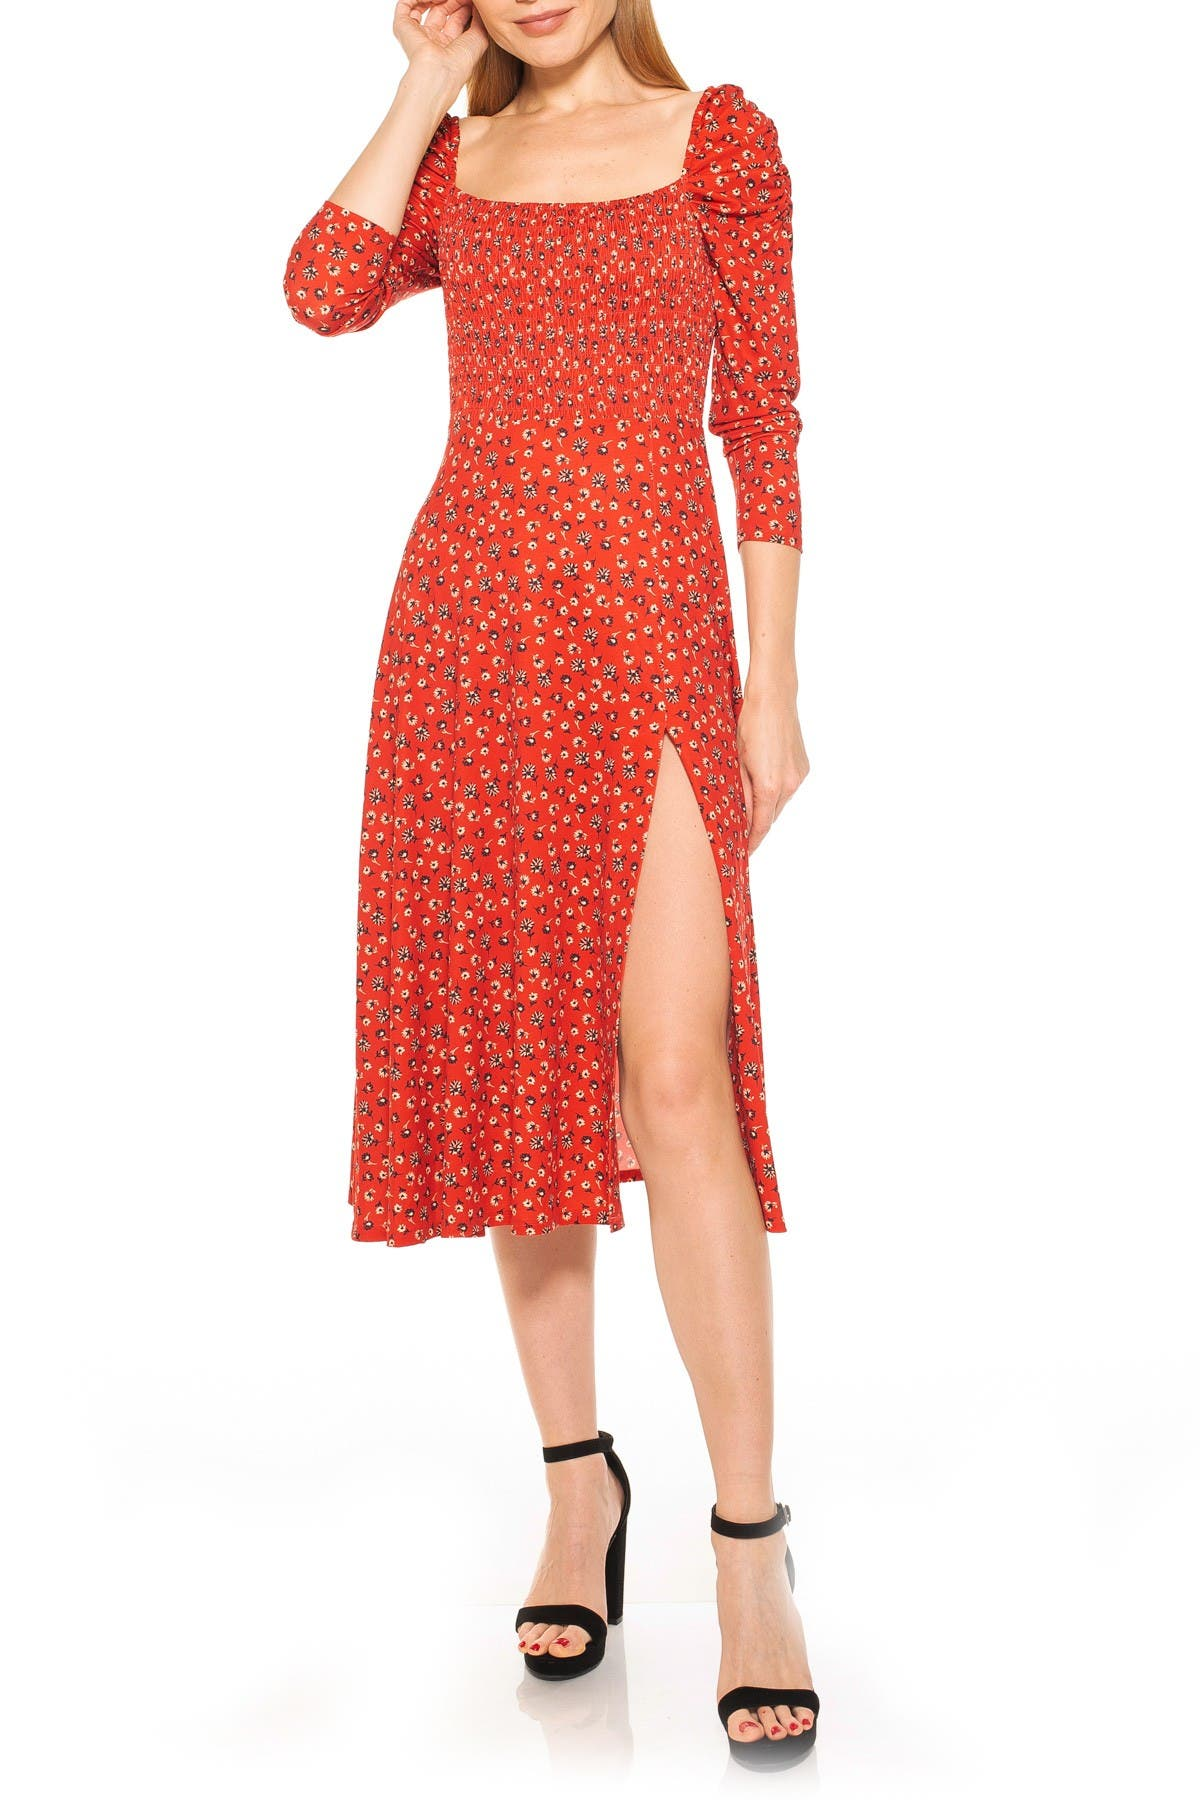 Image of Alexia Admor Smocked Fit Flare Puff Sleeve Dress